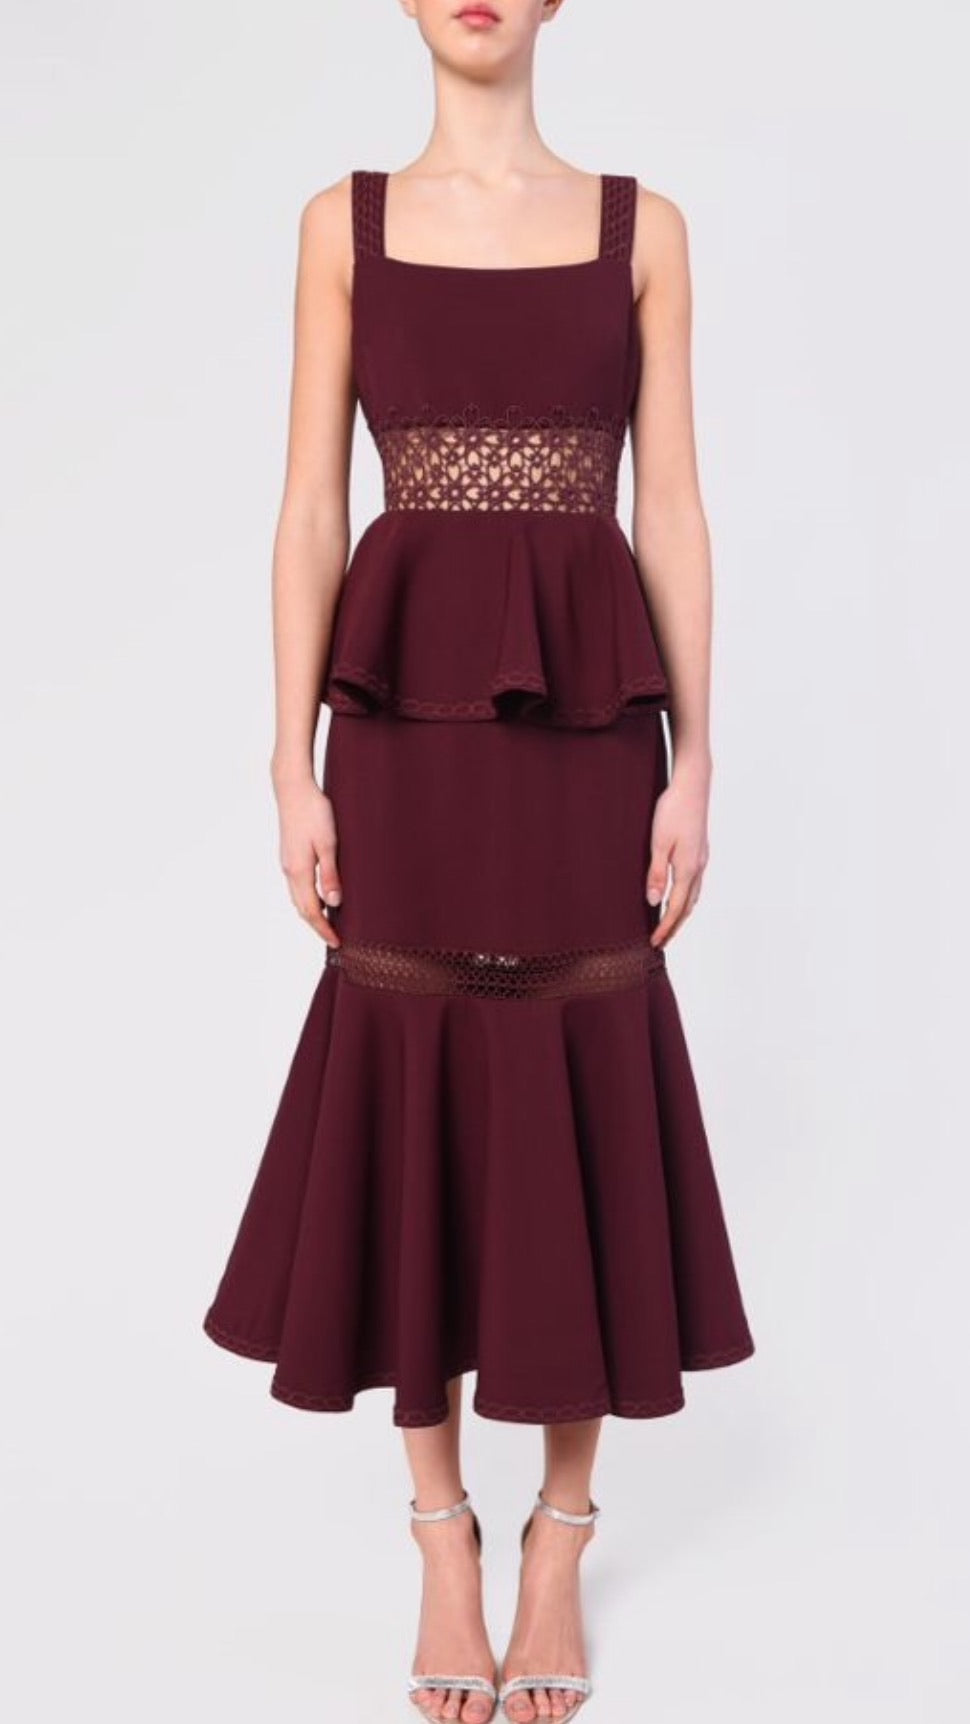 True Decadence Burgundy Midi Dress